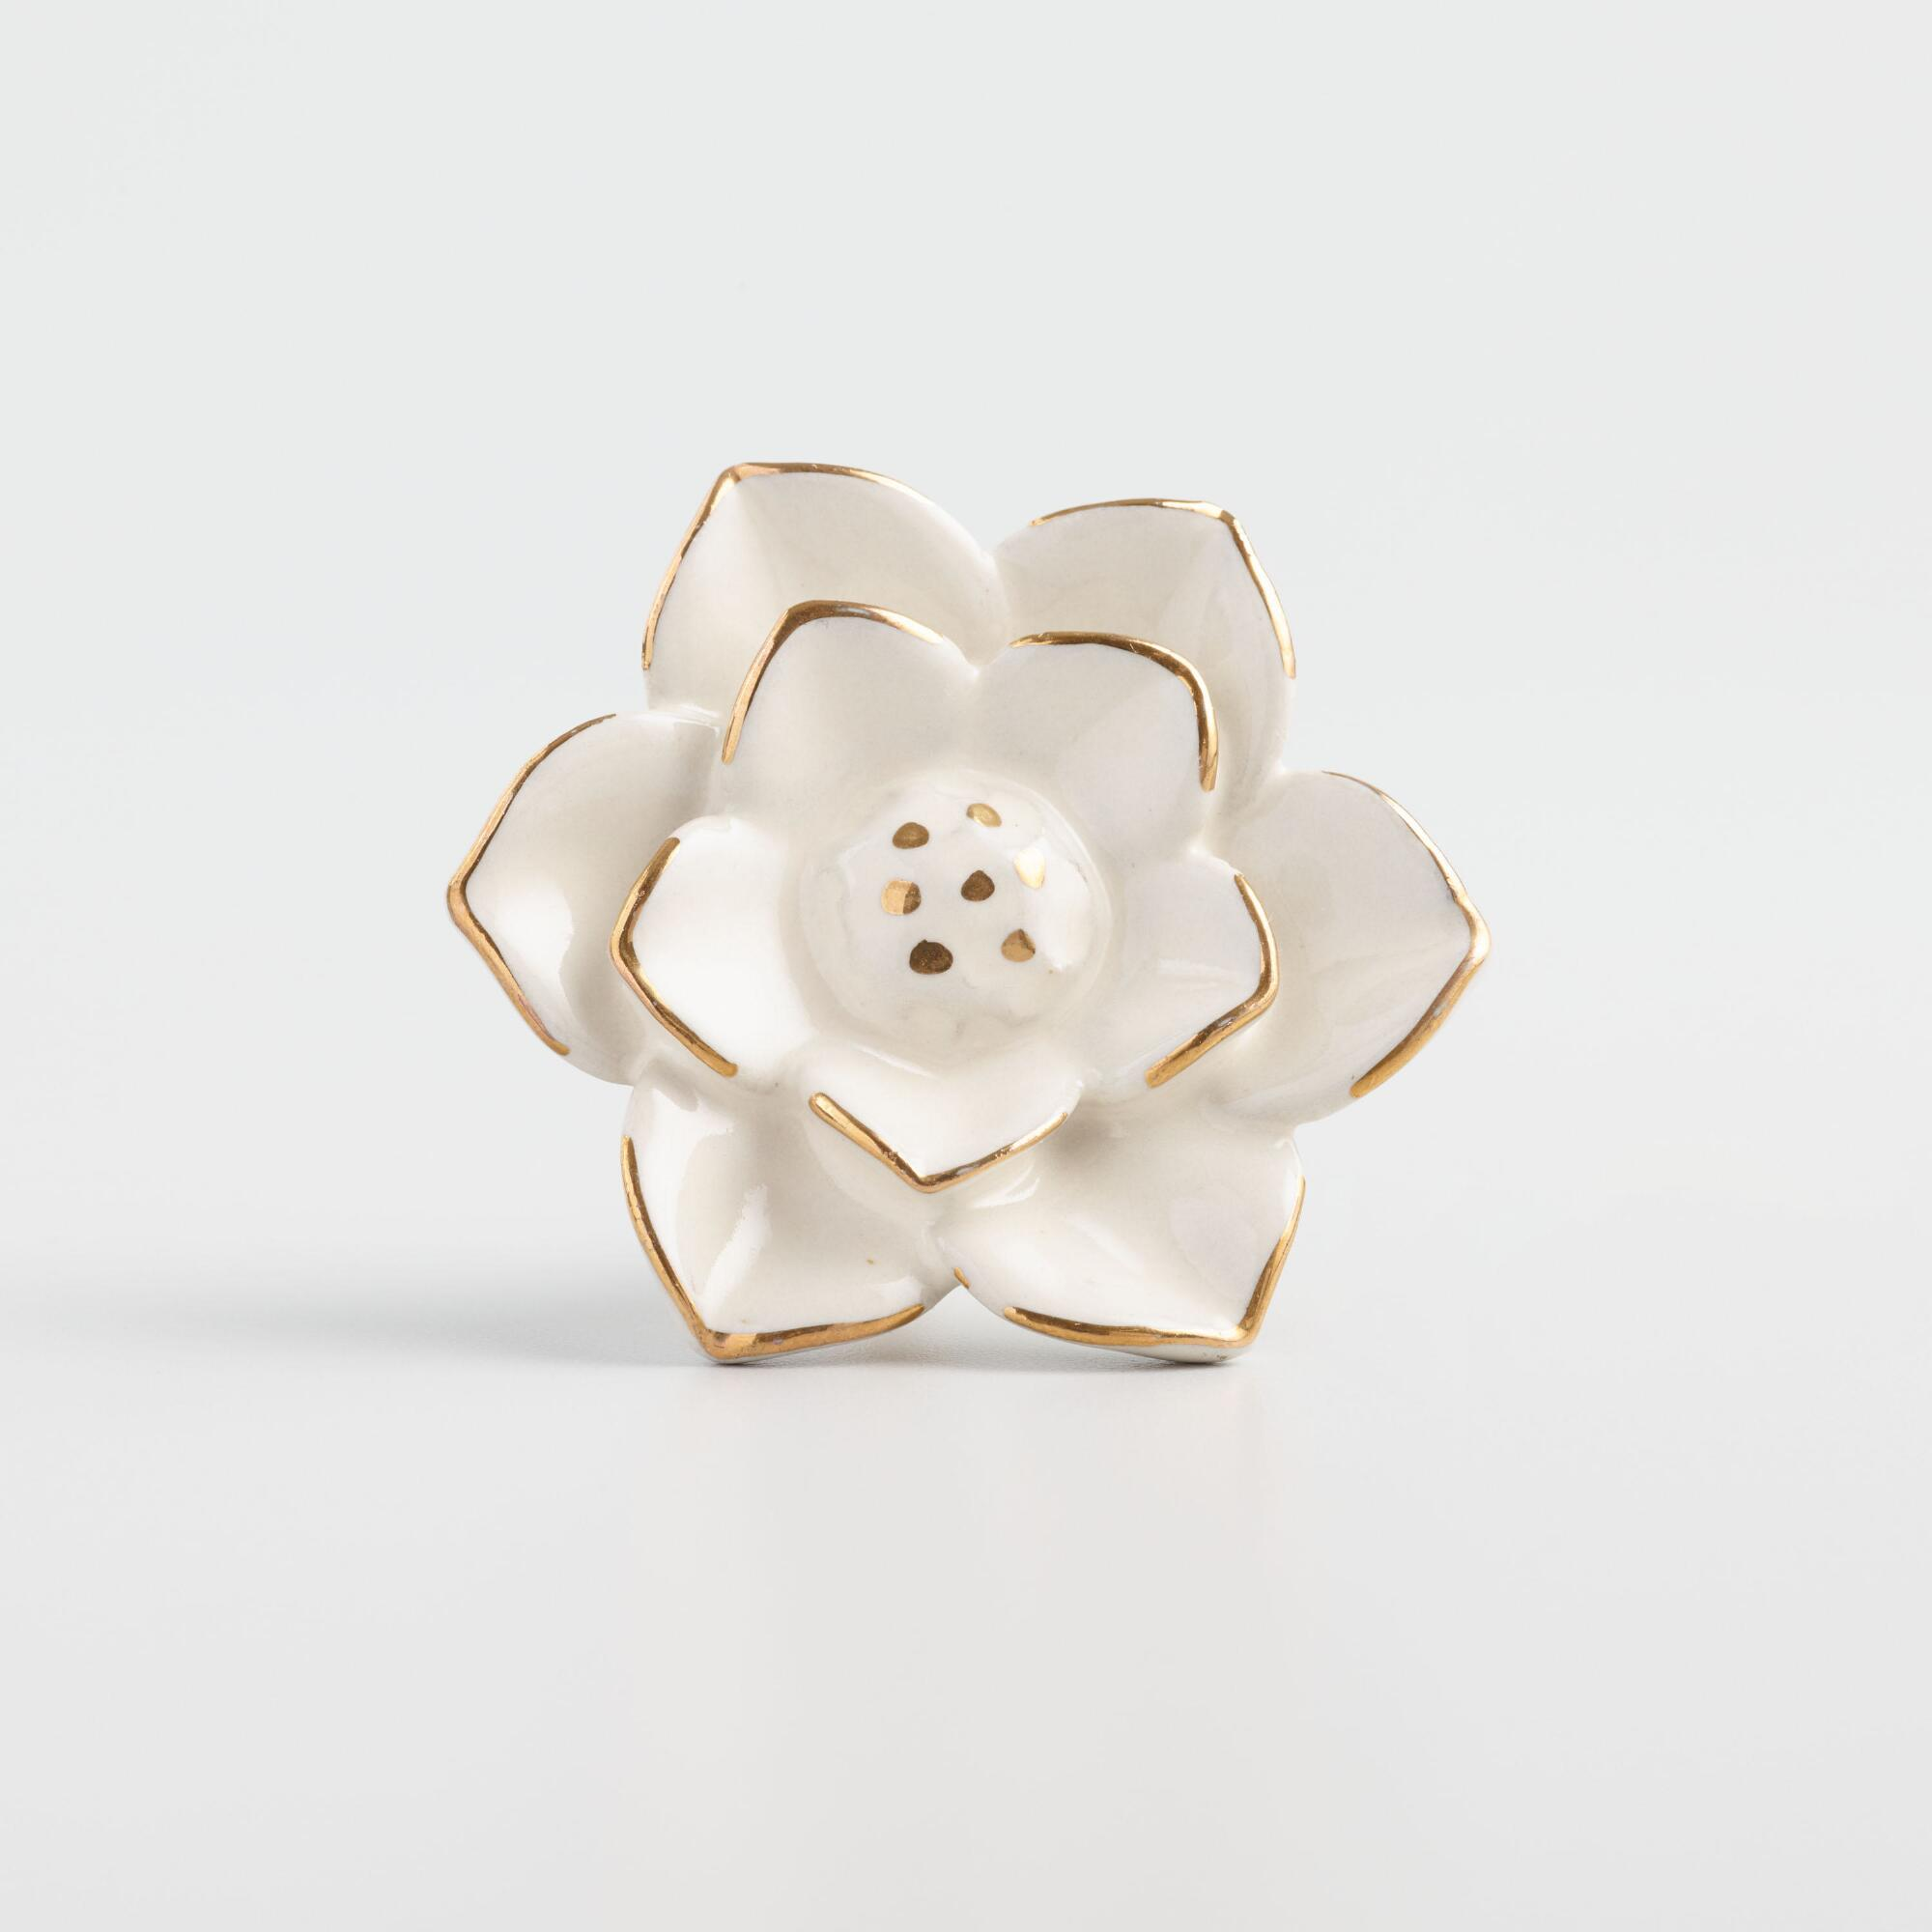 White and Gold Ceramic Flower Knobs Set of 2 by World Market